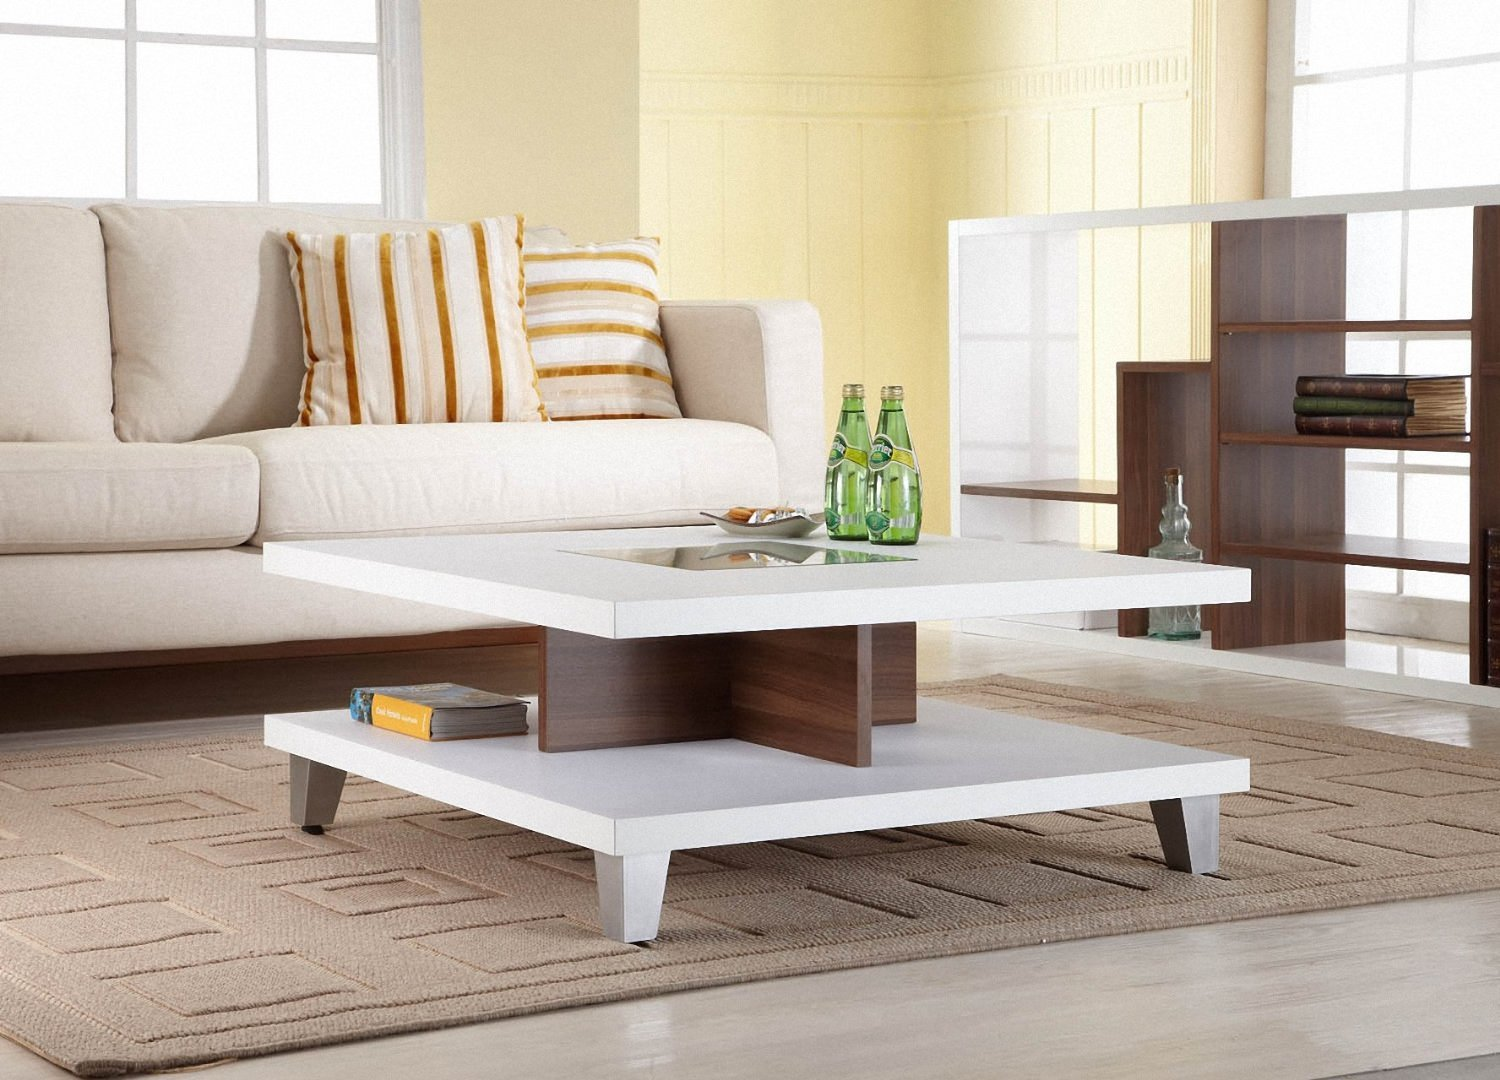 Elegant Modern Stylish White Coffee Table Cotemporary Furniture Living